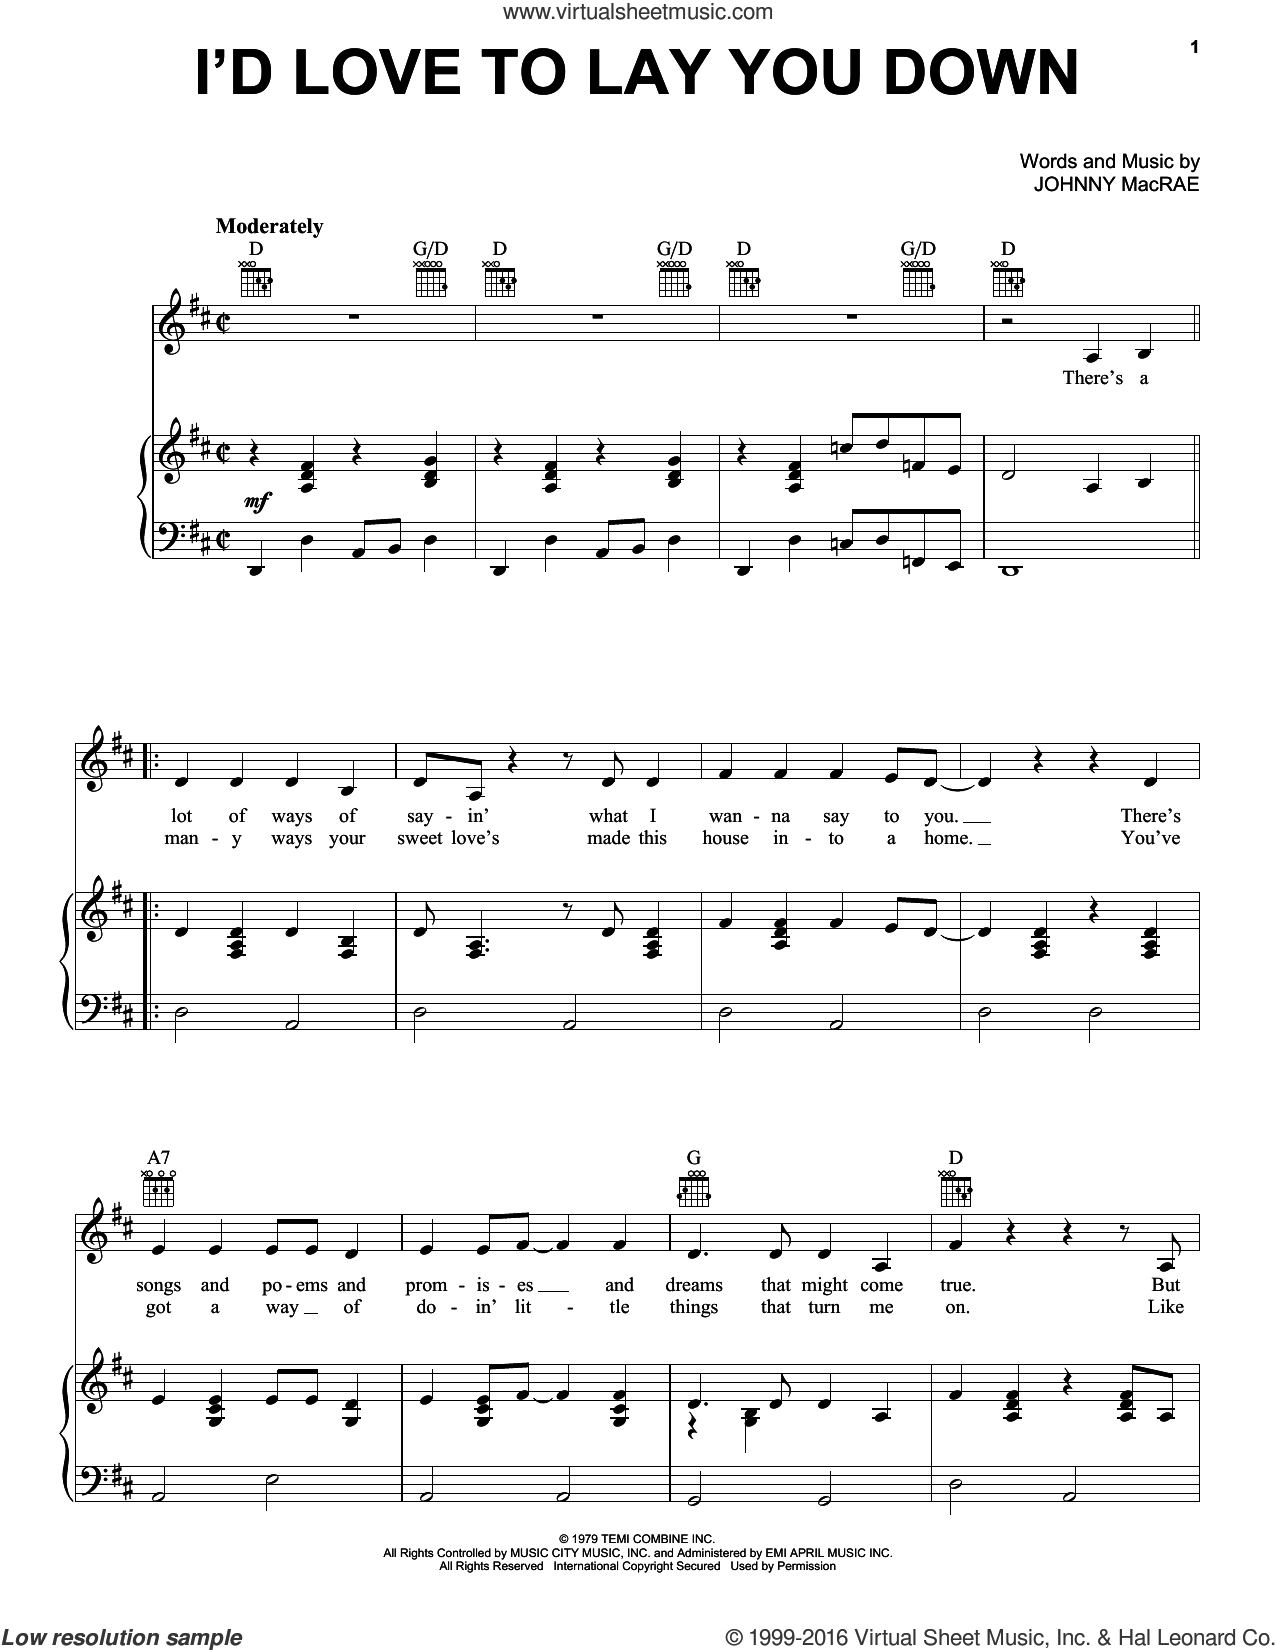 I'd Love To Lay You Down sheet music for voice, piano or guitar by Johnny MacRae and Conway Twitty. Score Image Preview.